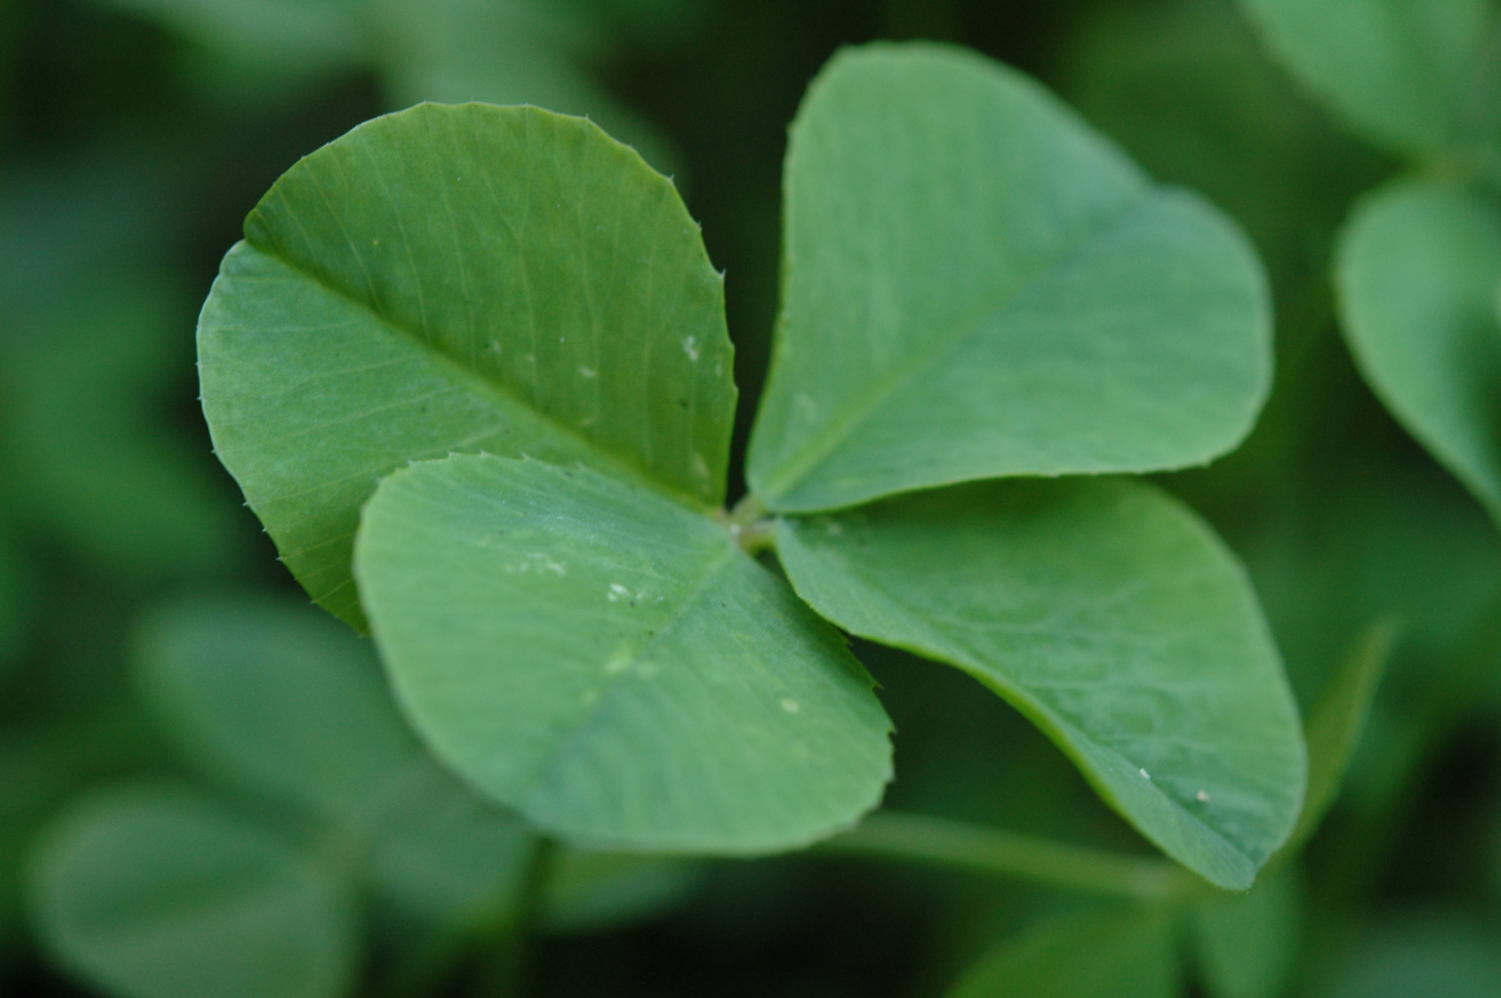 The four-leaf clover is a rare charm that most people associate with St. Patrick's Day, but underneath the popularity is a rich and complicated history.